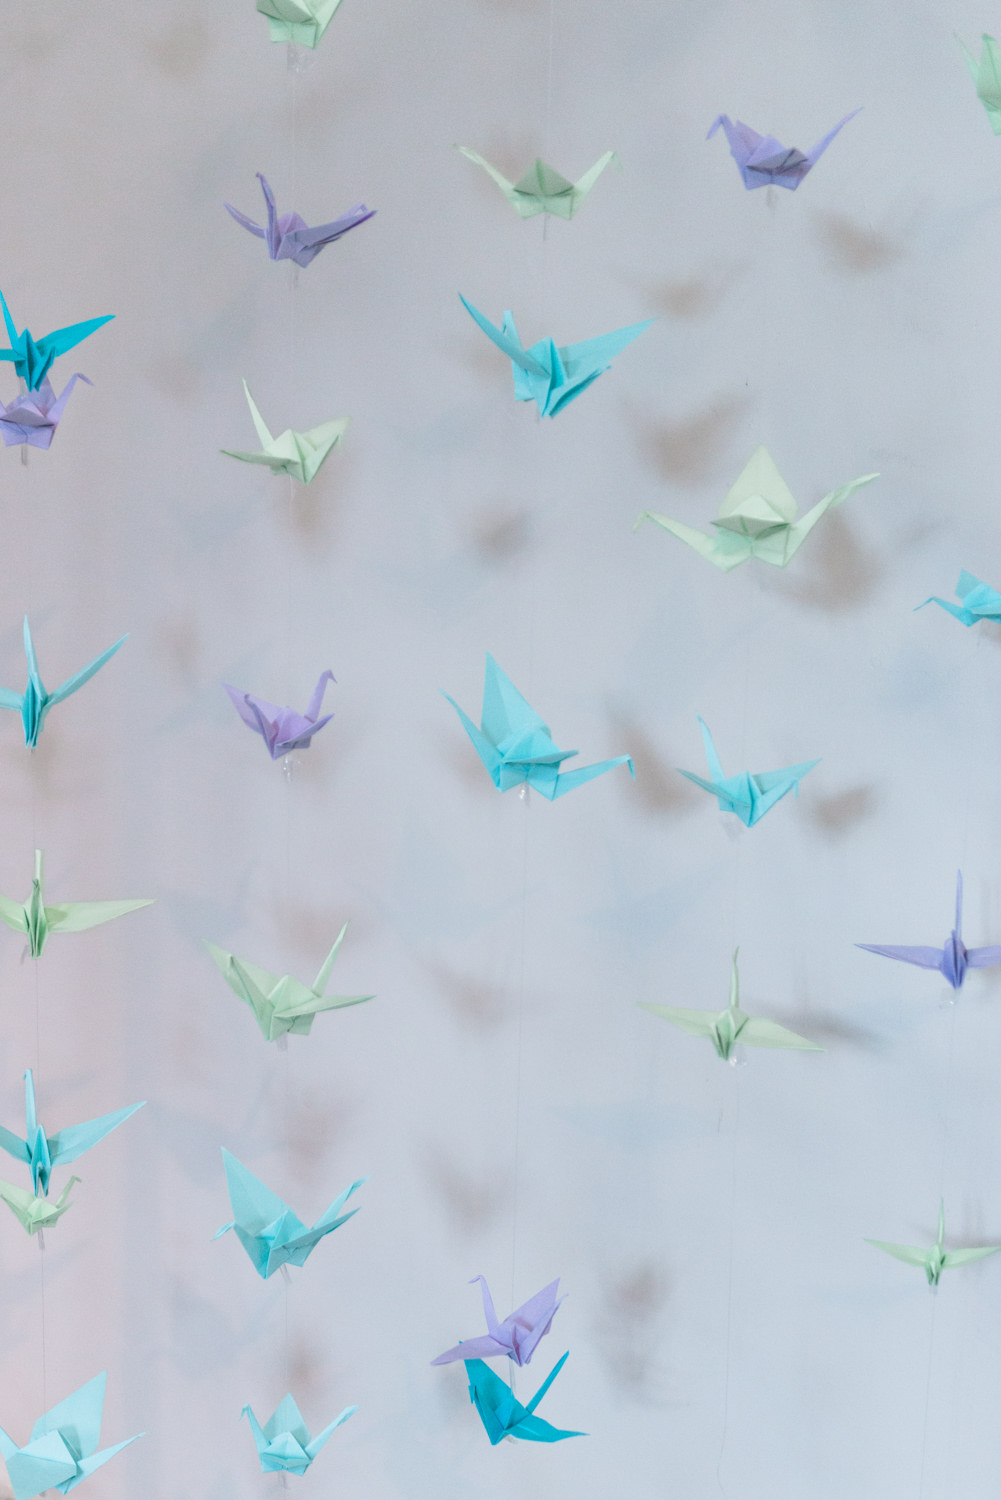 Origami crane birds at a wedding in Belgium